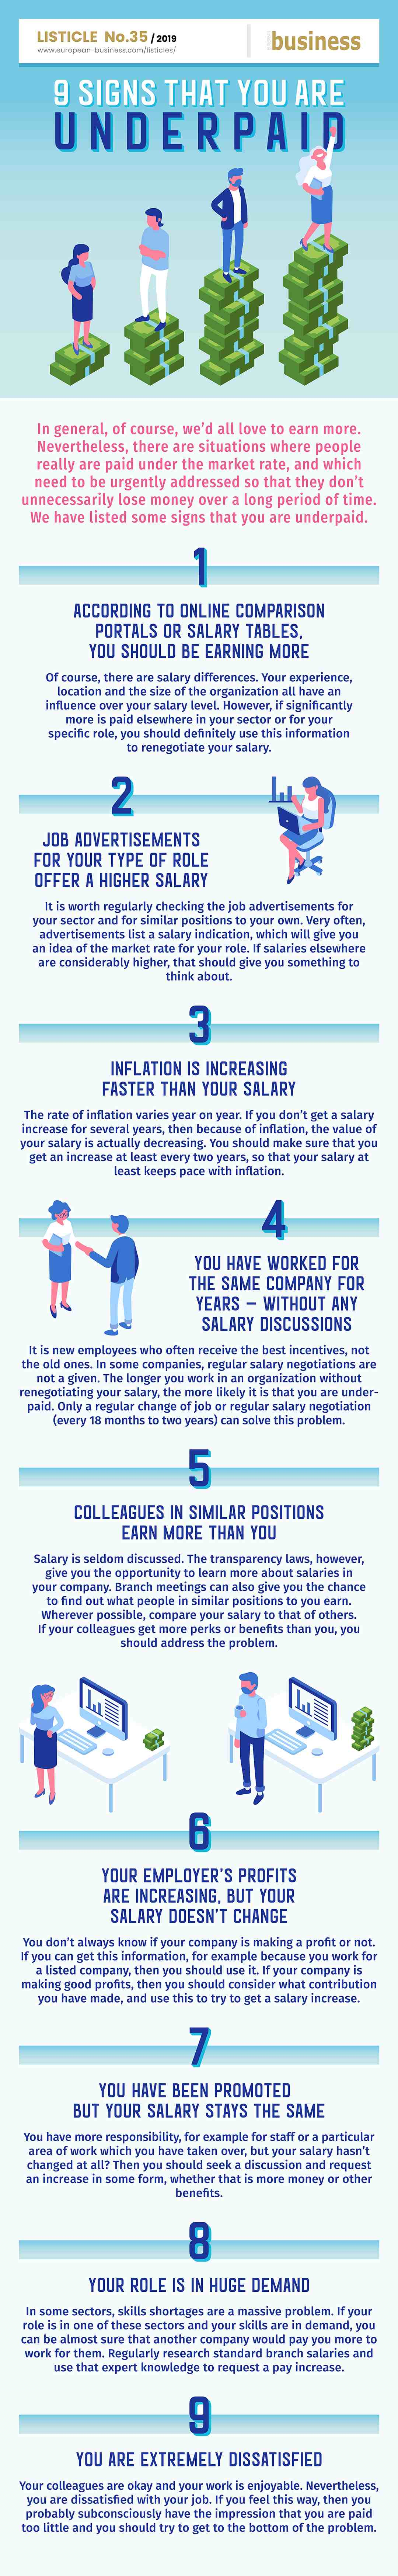 9 signs that you are underpaid